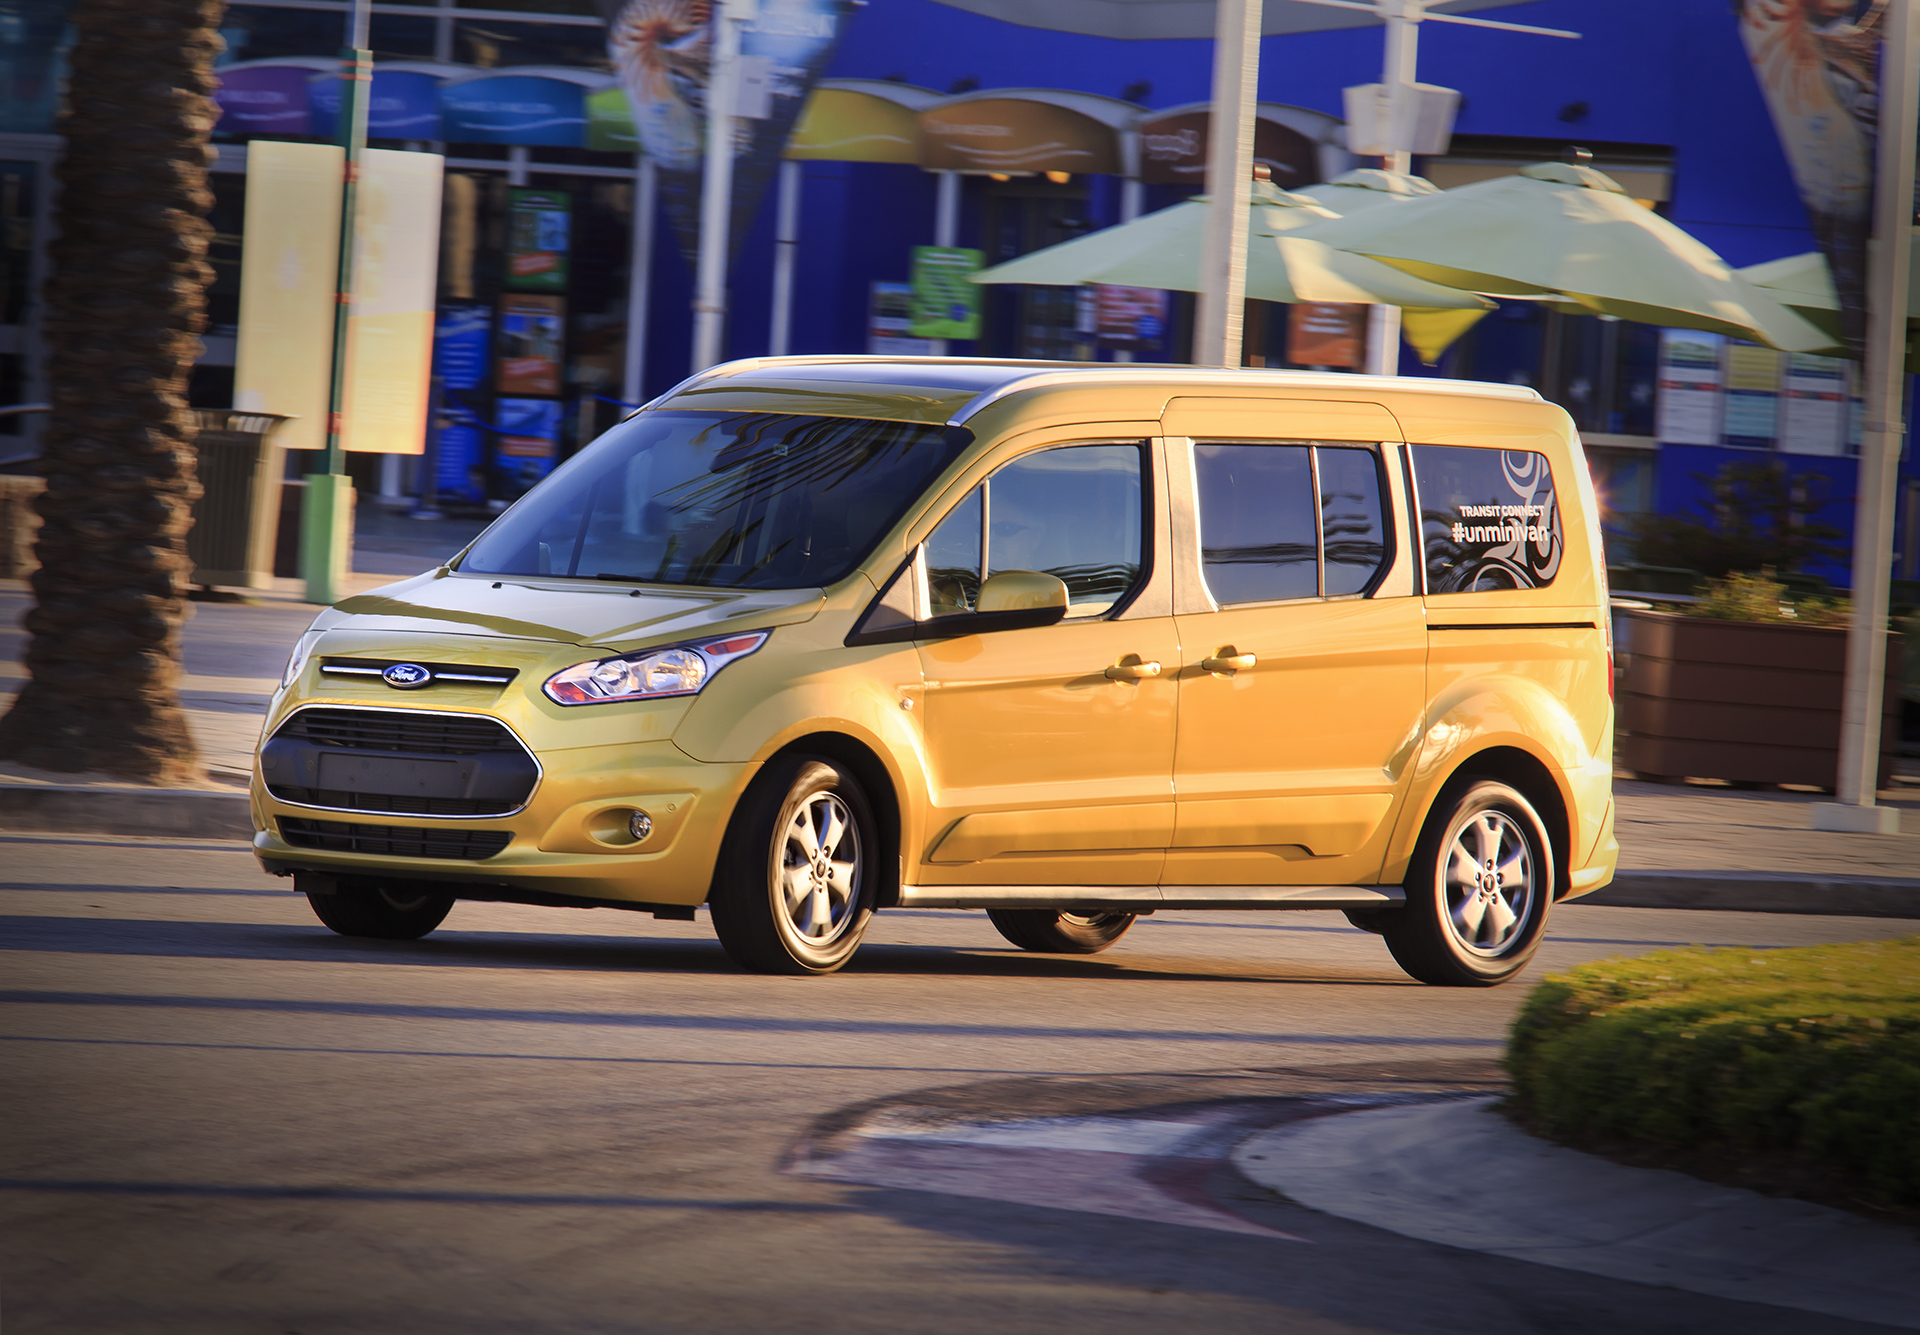 2014 Transit Connect Sales